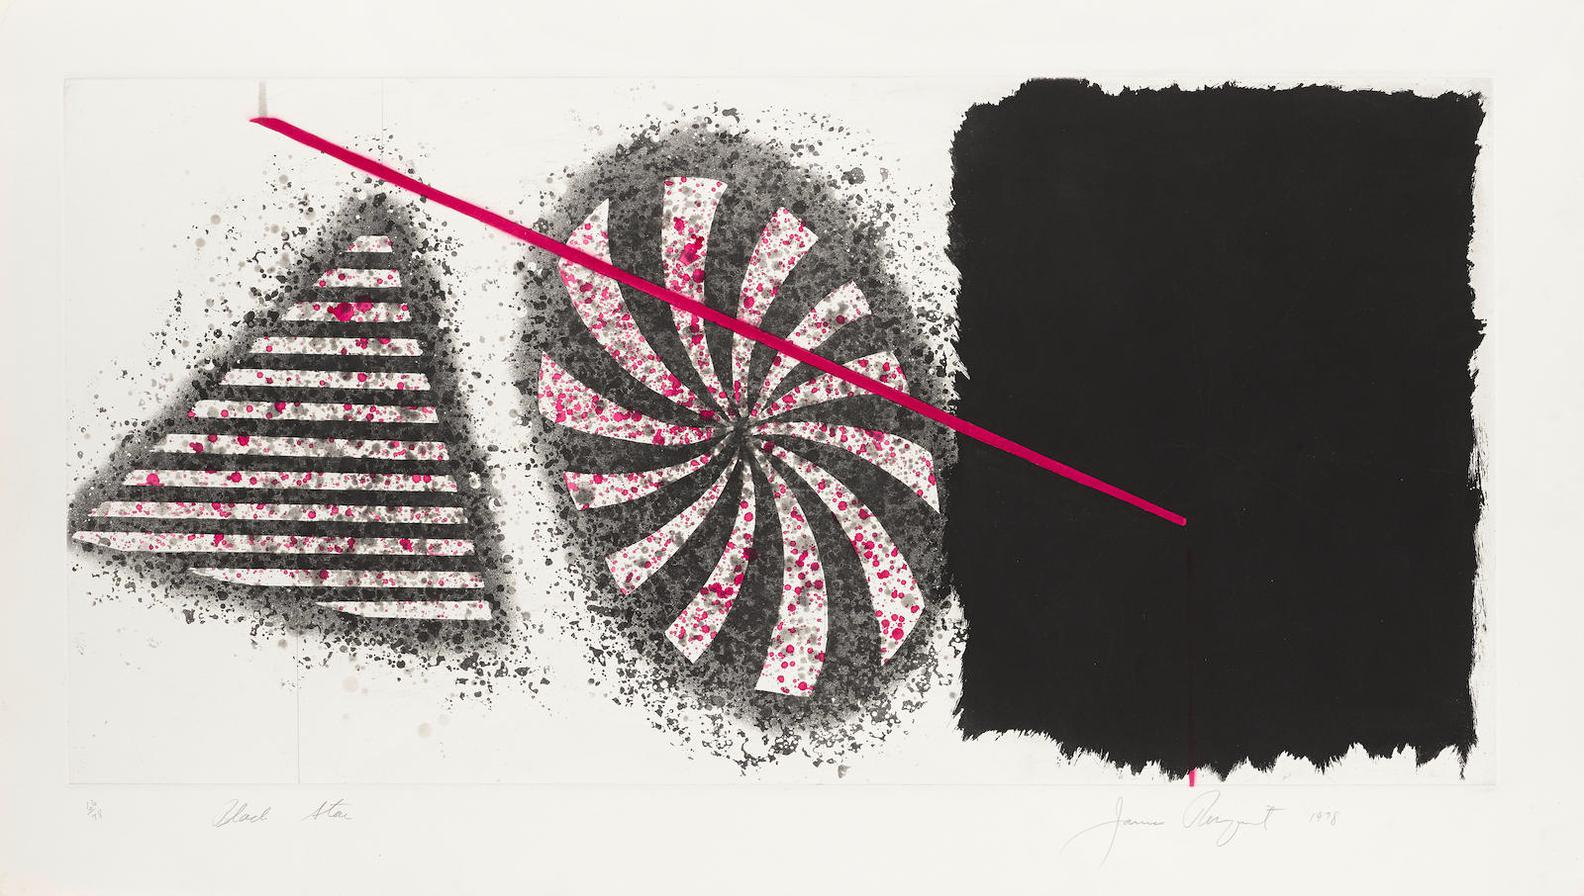 James Rosenquist-Black Star; Black Star 2Nd State-1978